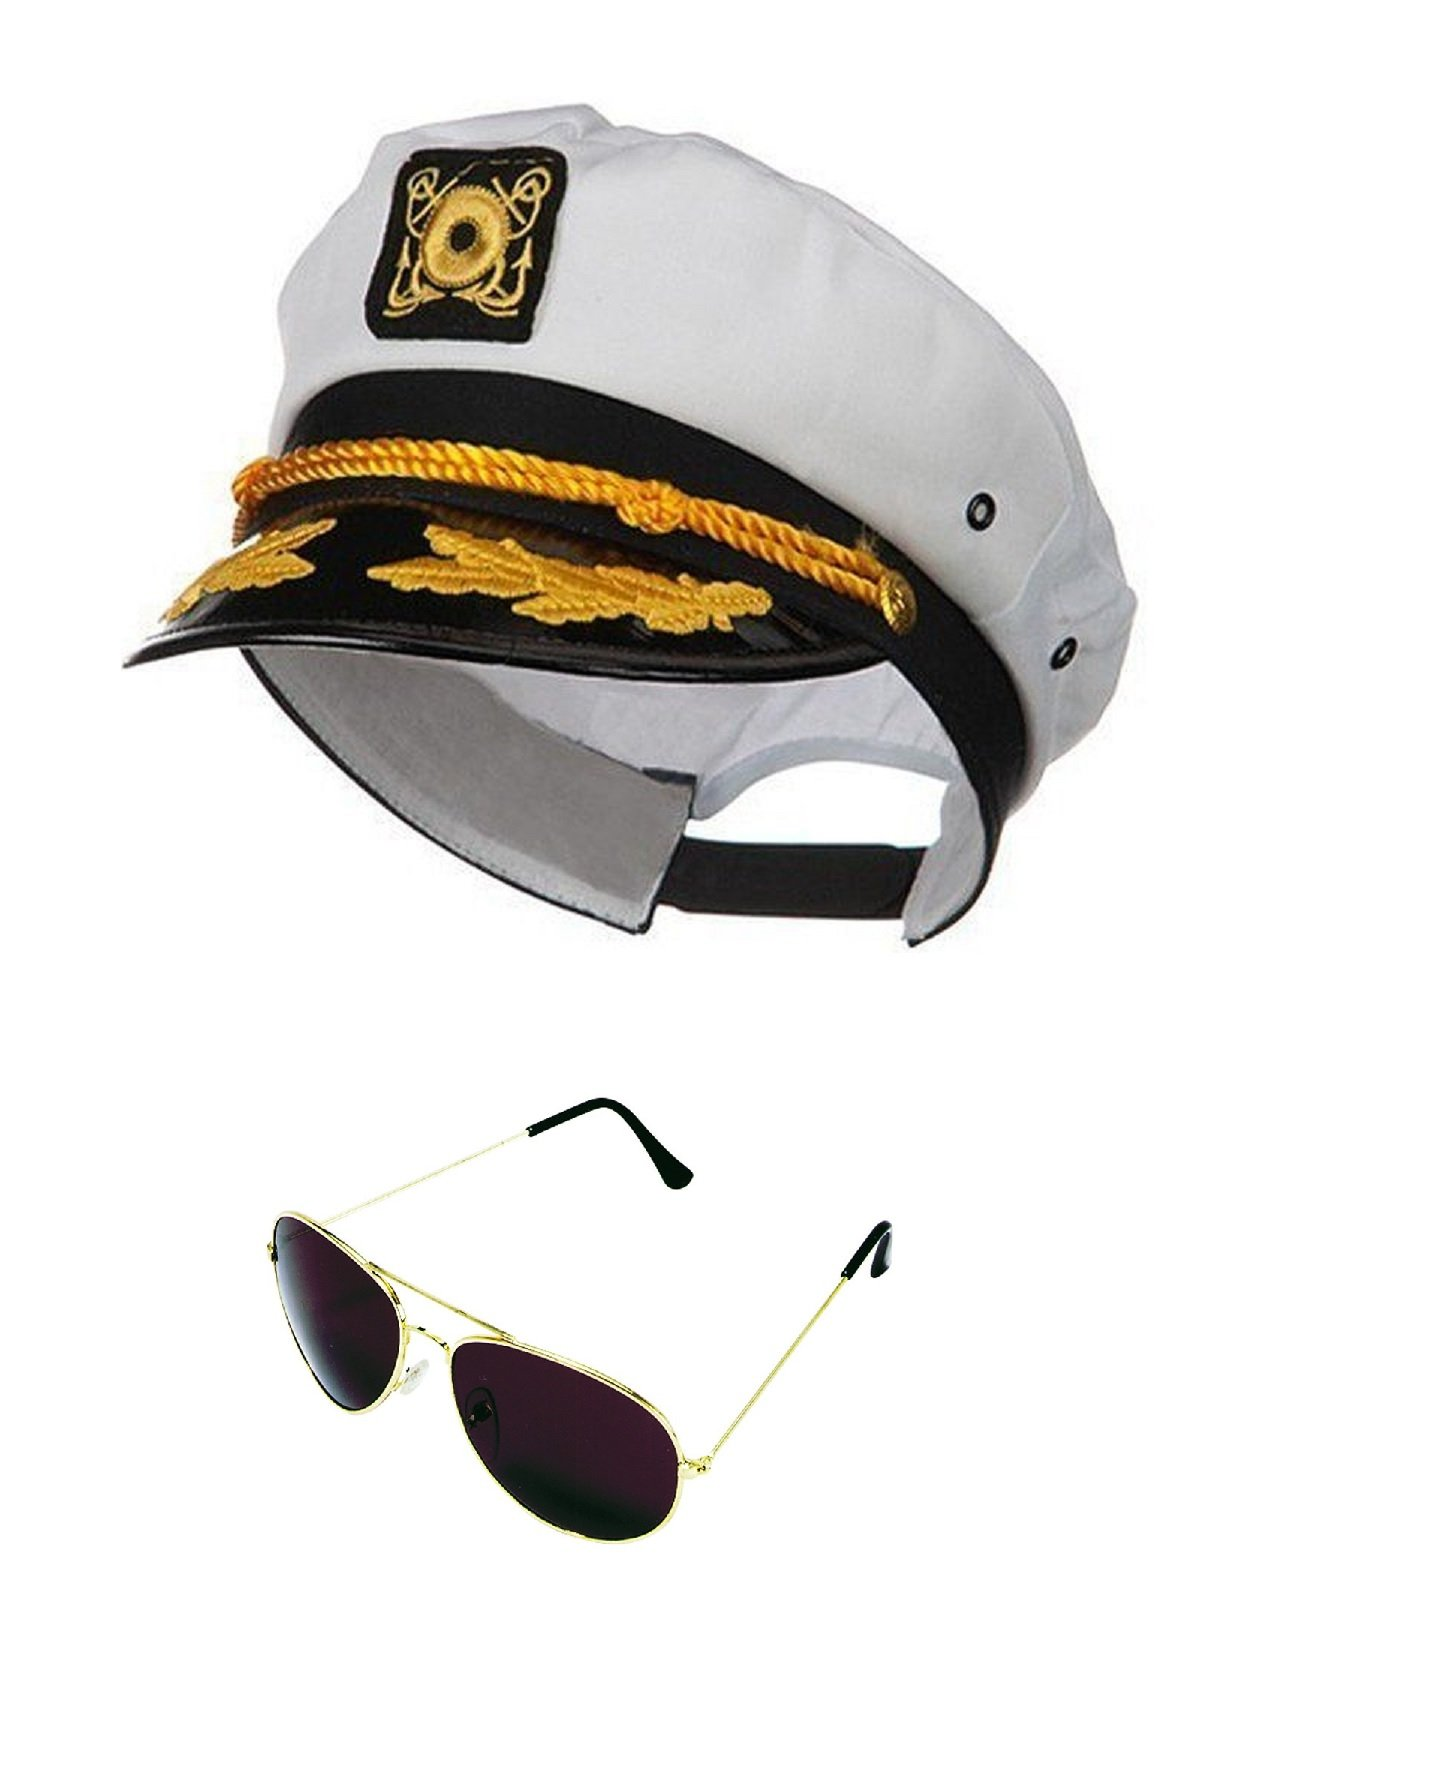 Yacht Boat Captain Hat Sailor Ship Cap White Gold and Gold Aviator Sunglasses